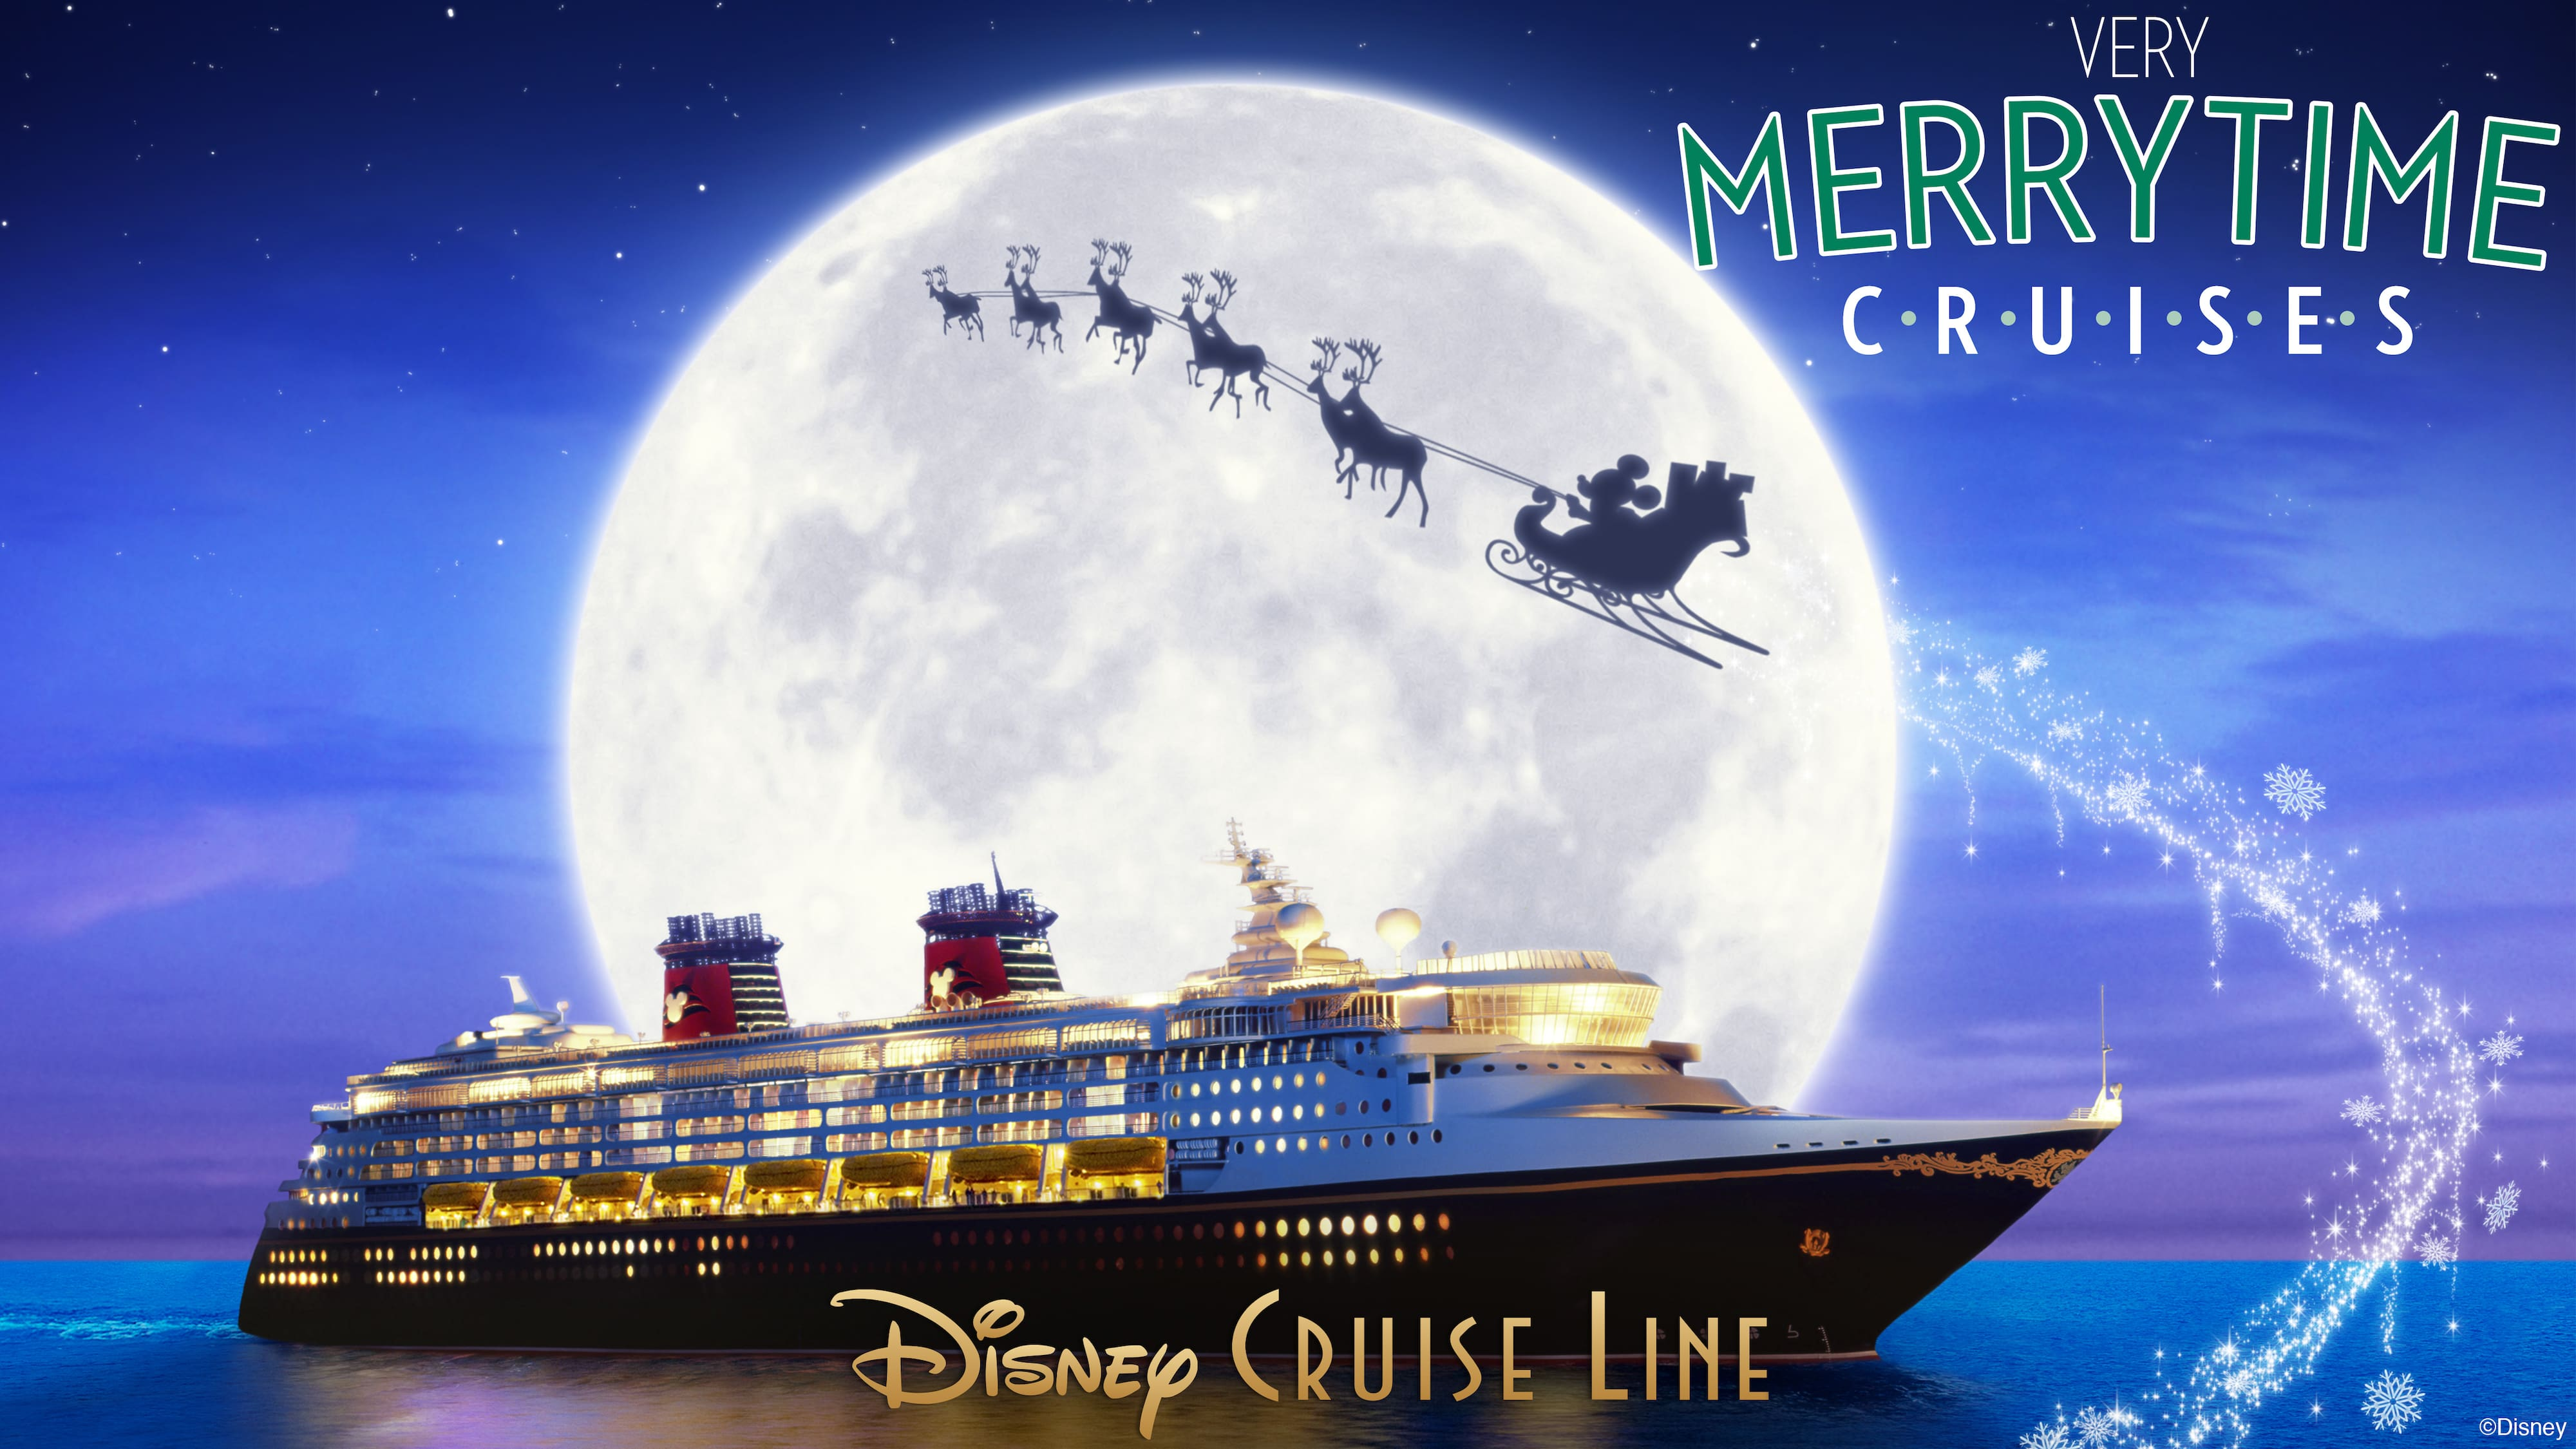 Get Excited For The Season With 18 Holiday Disney Parks Blog ...